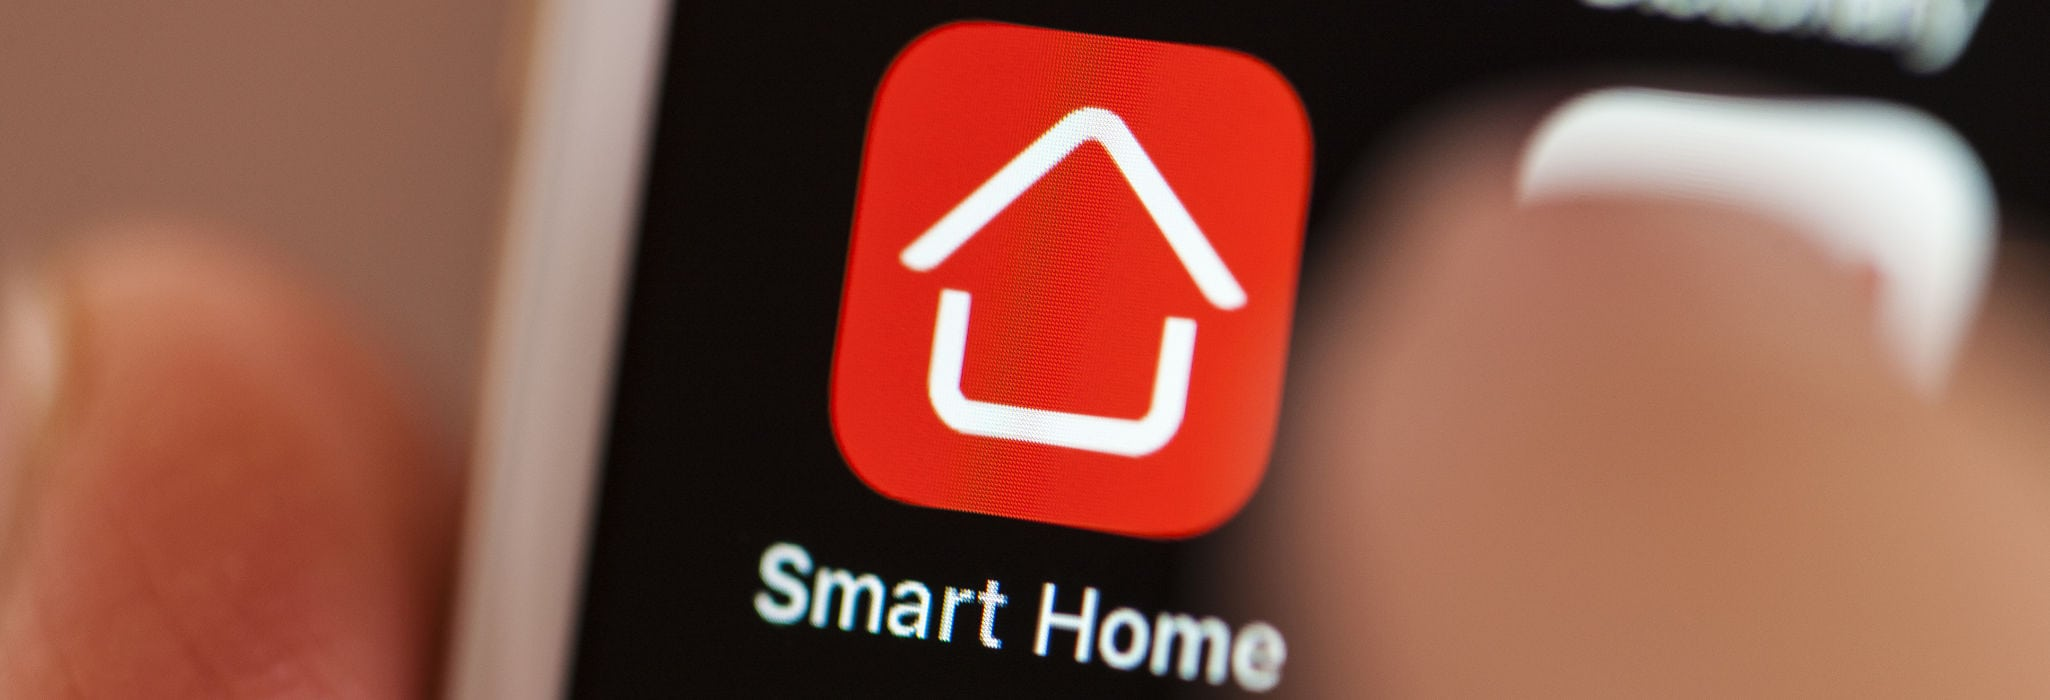 Smart Home phone app icon.